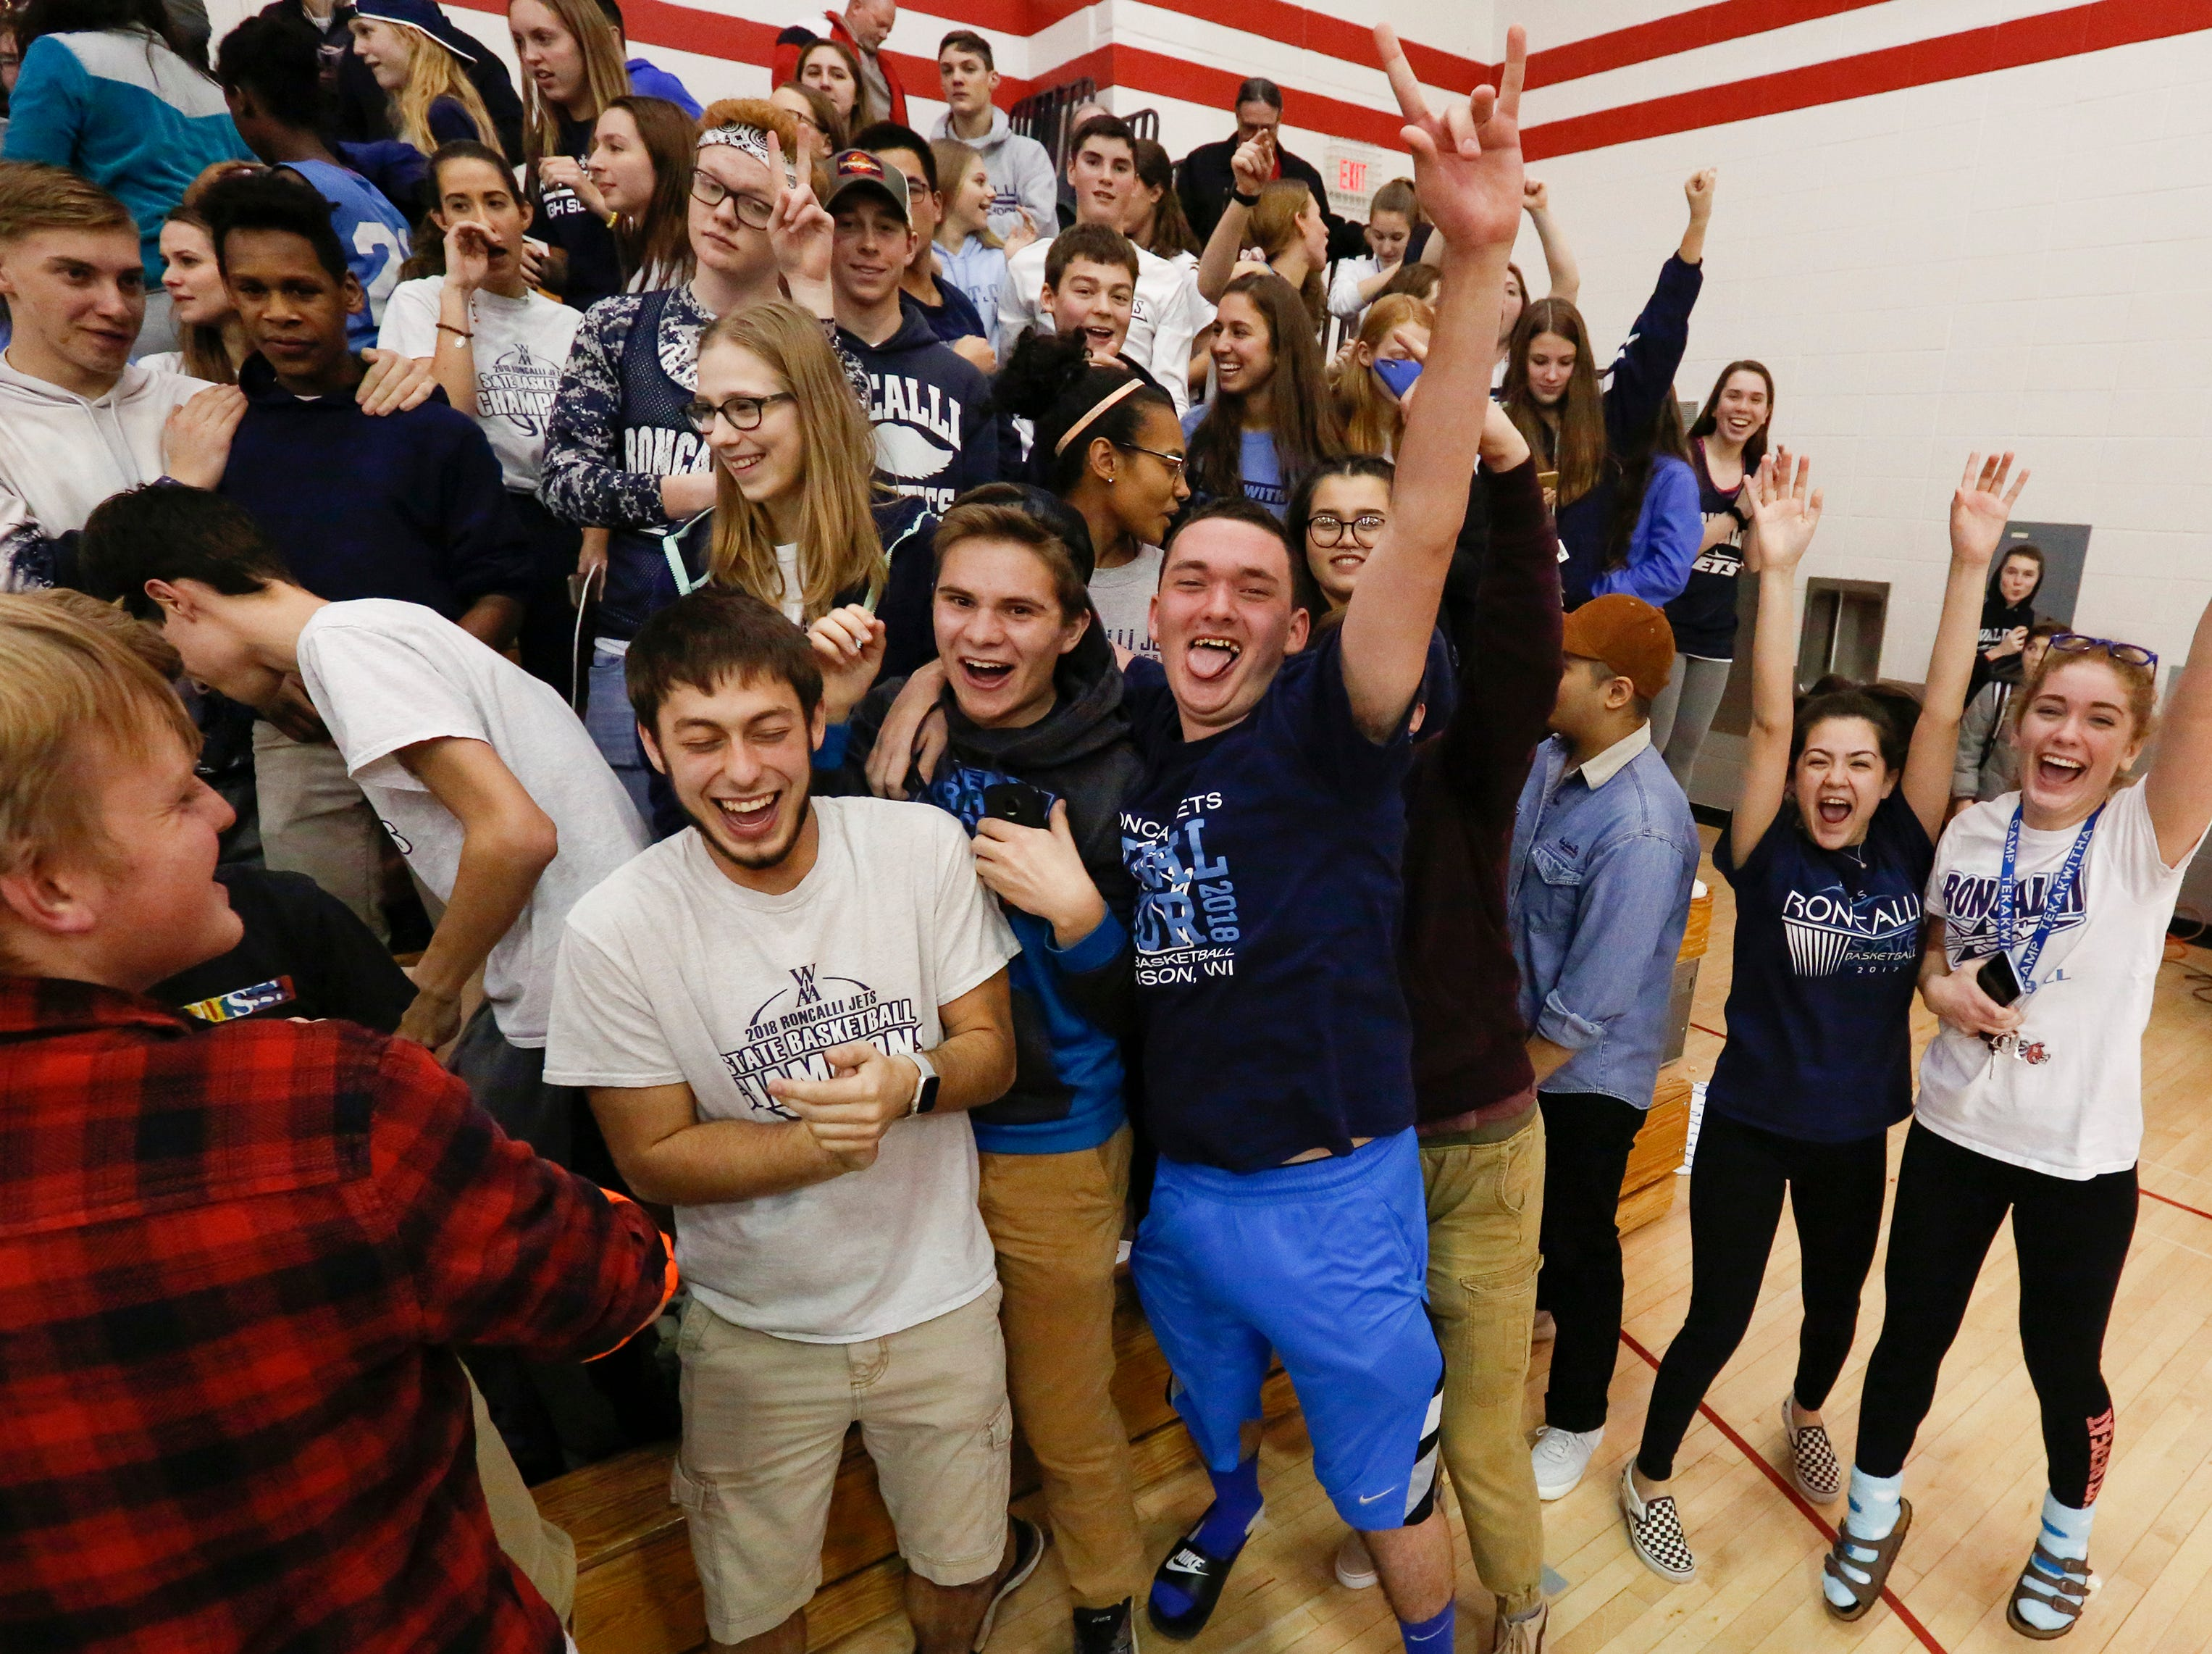 Roncalli's student section celebrates an overtime win over Valders during an Eastern Wisconsin Conference game at Valders High School Thursday, January 3, 2019, in Valders, Wis. Joshua Clark/USA TODAY NETWORK-Wisconsin